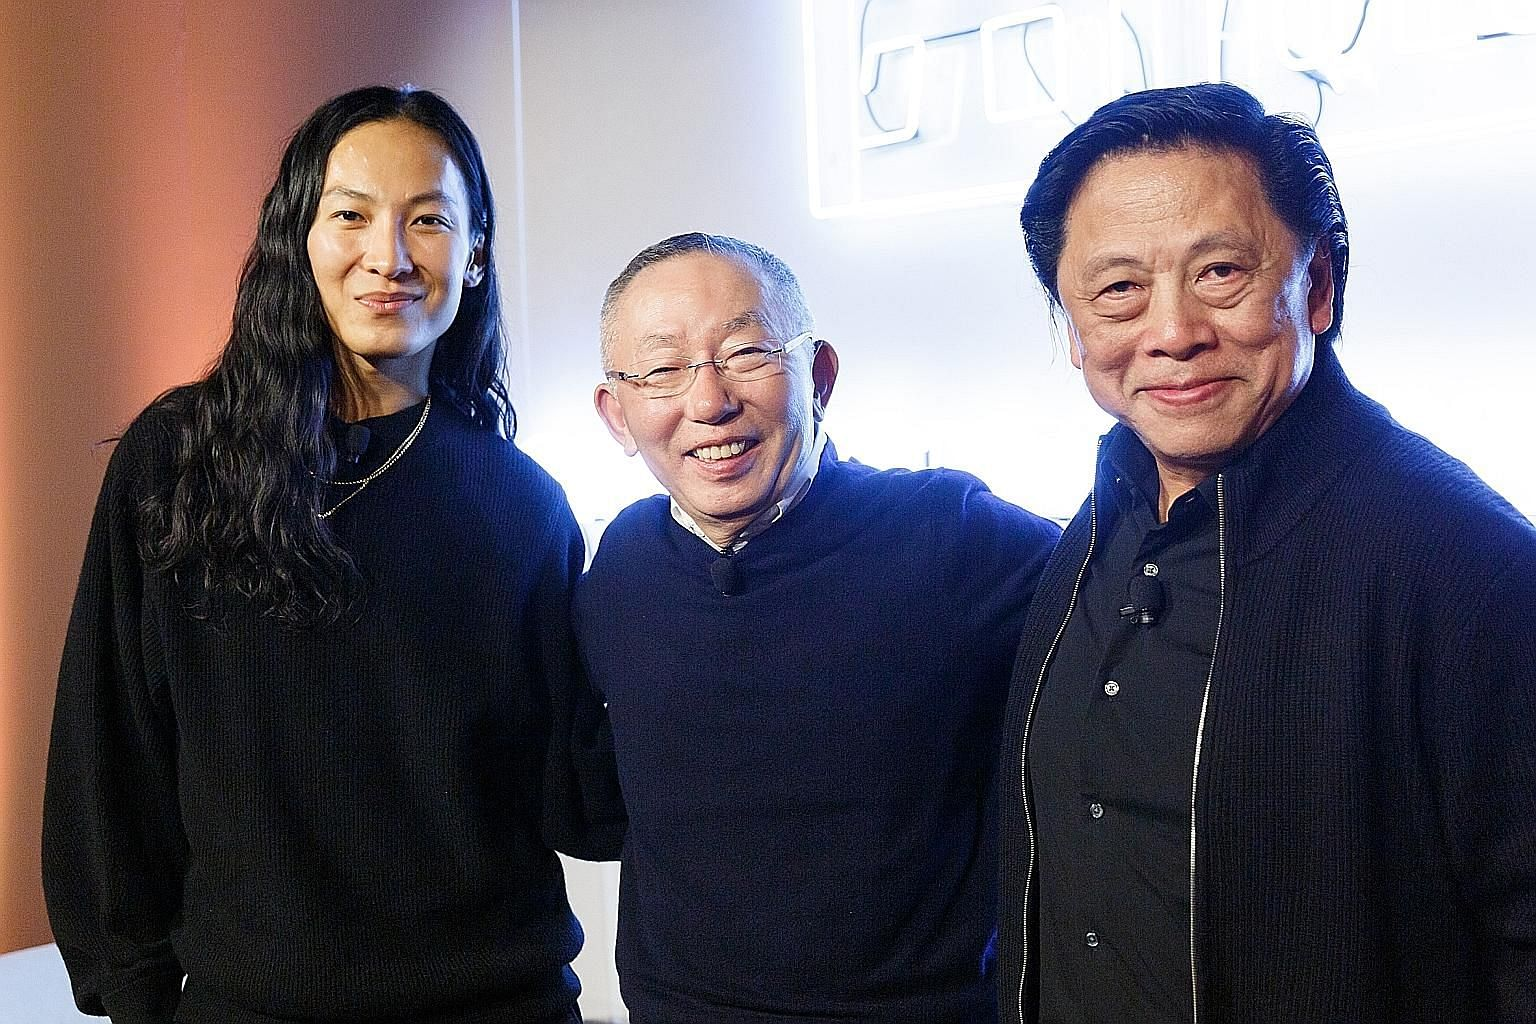 The Uniqlo x Alexander Wang collection of 16 products includes a sleeveless bodysuit ($49.90, left) for women and a tank top ($19.90) and pair of tights ($49.90, both right) for men. (From left) Designer Alexander Wang, Fast Retailing Group chief exe